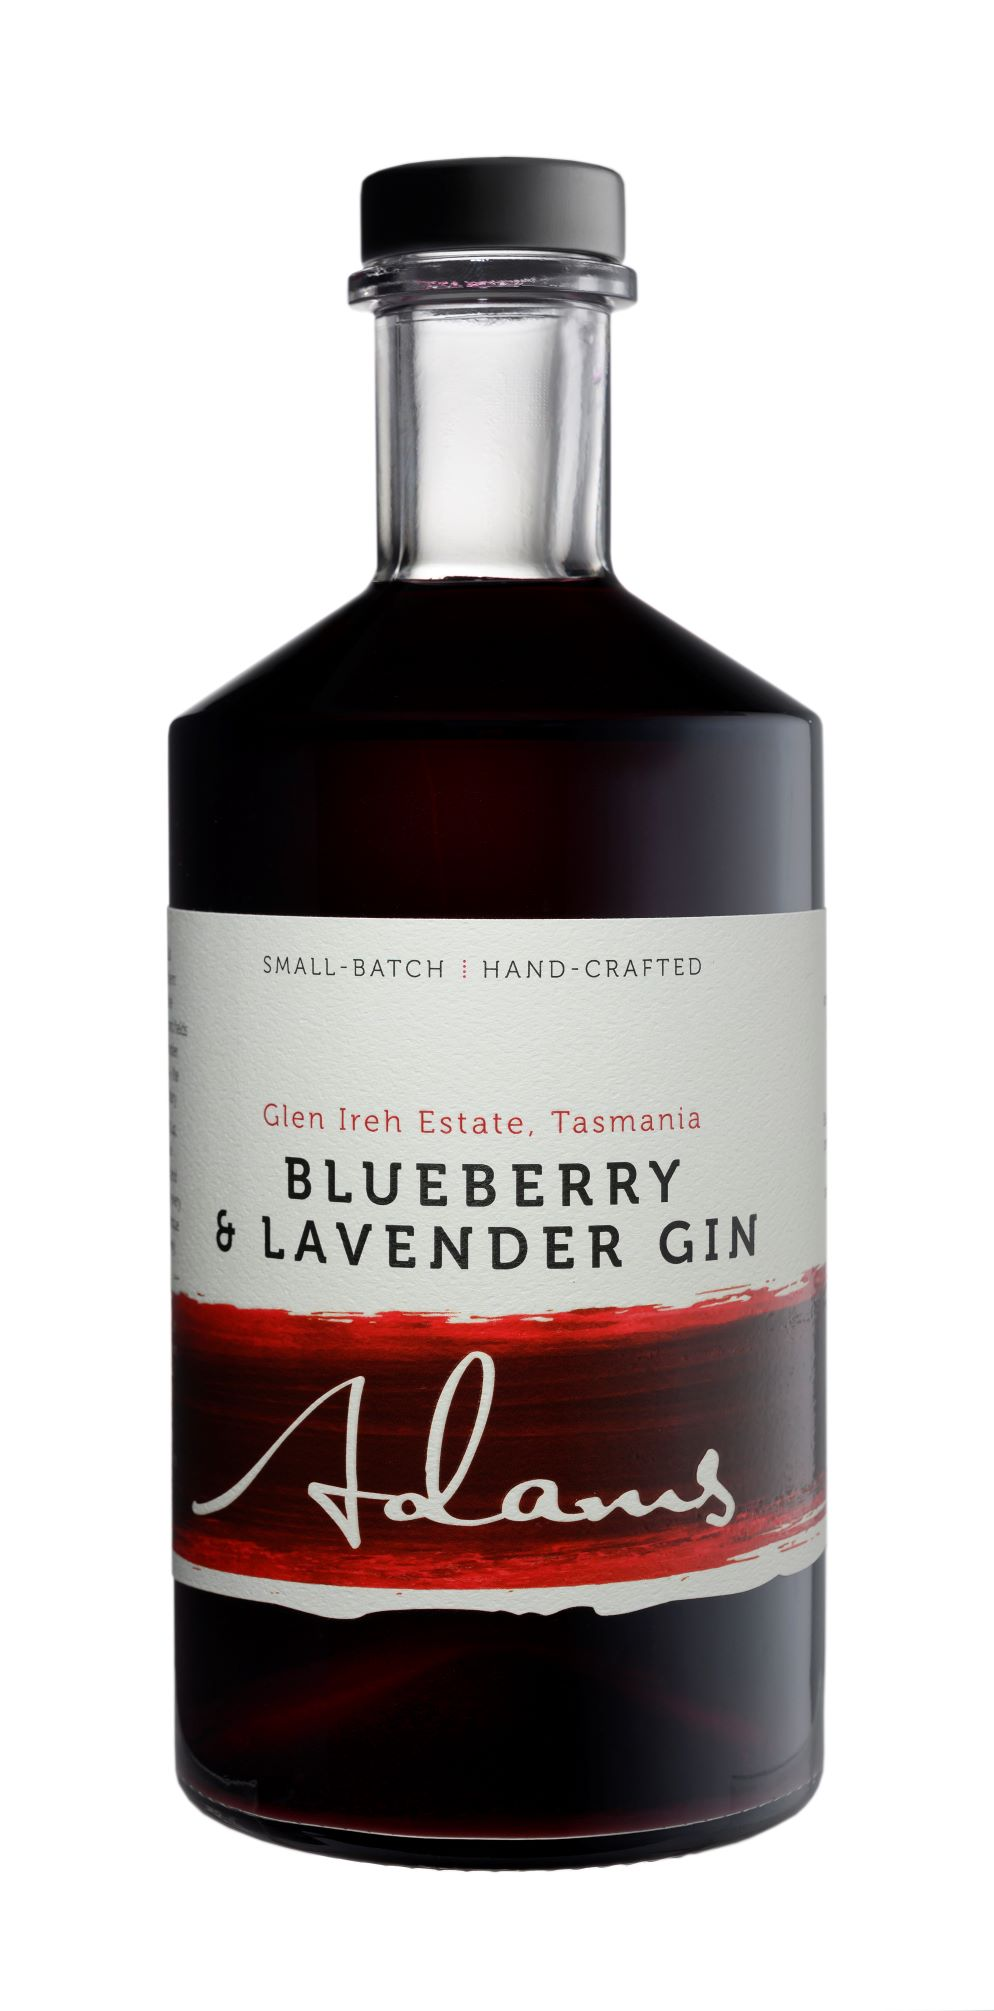 Blueberry & Lavender Gin